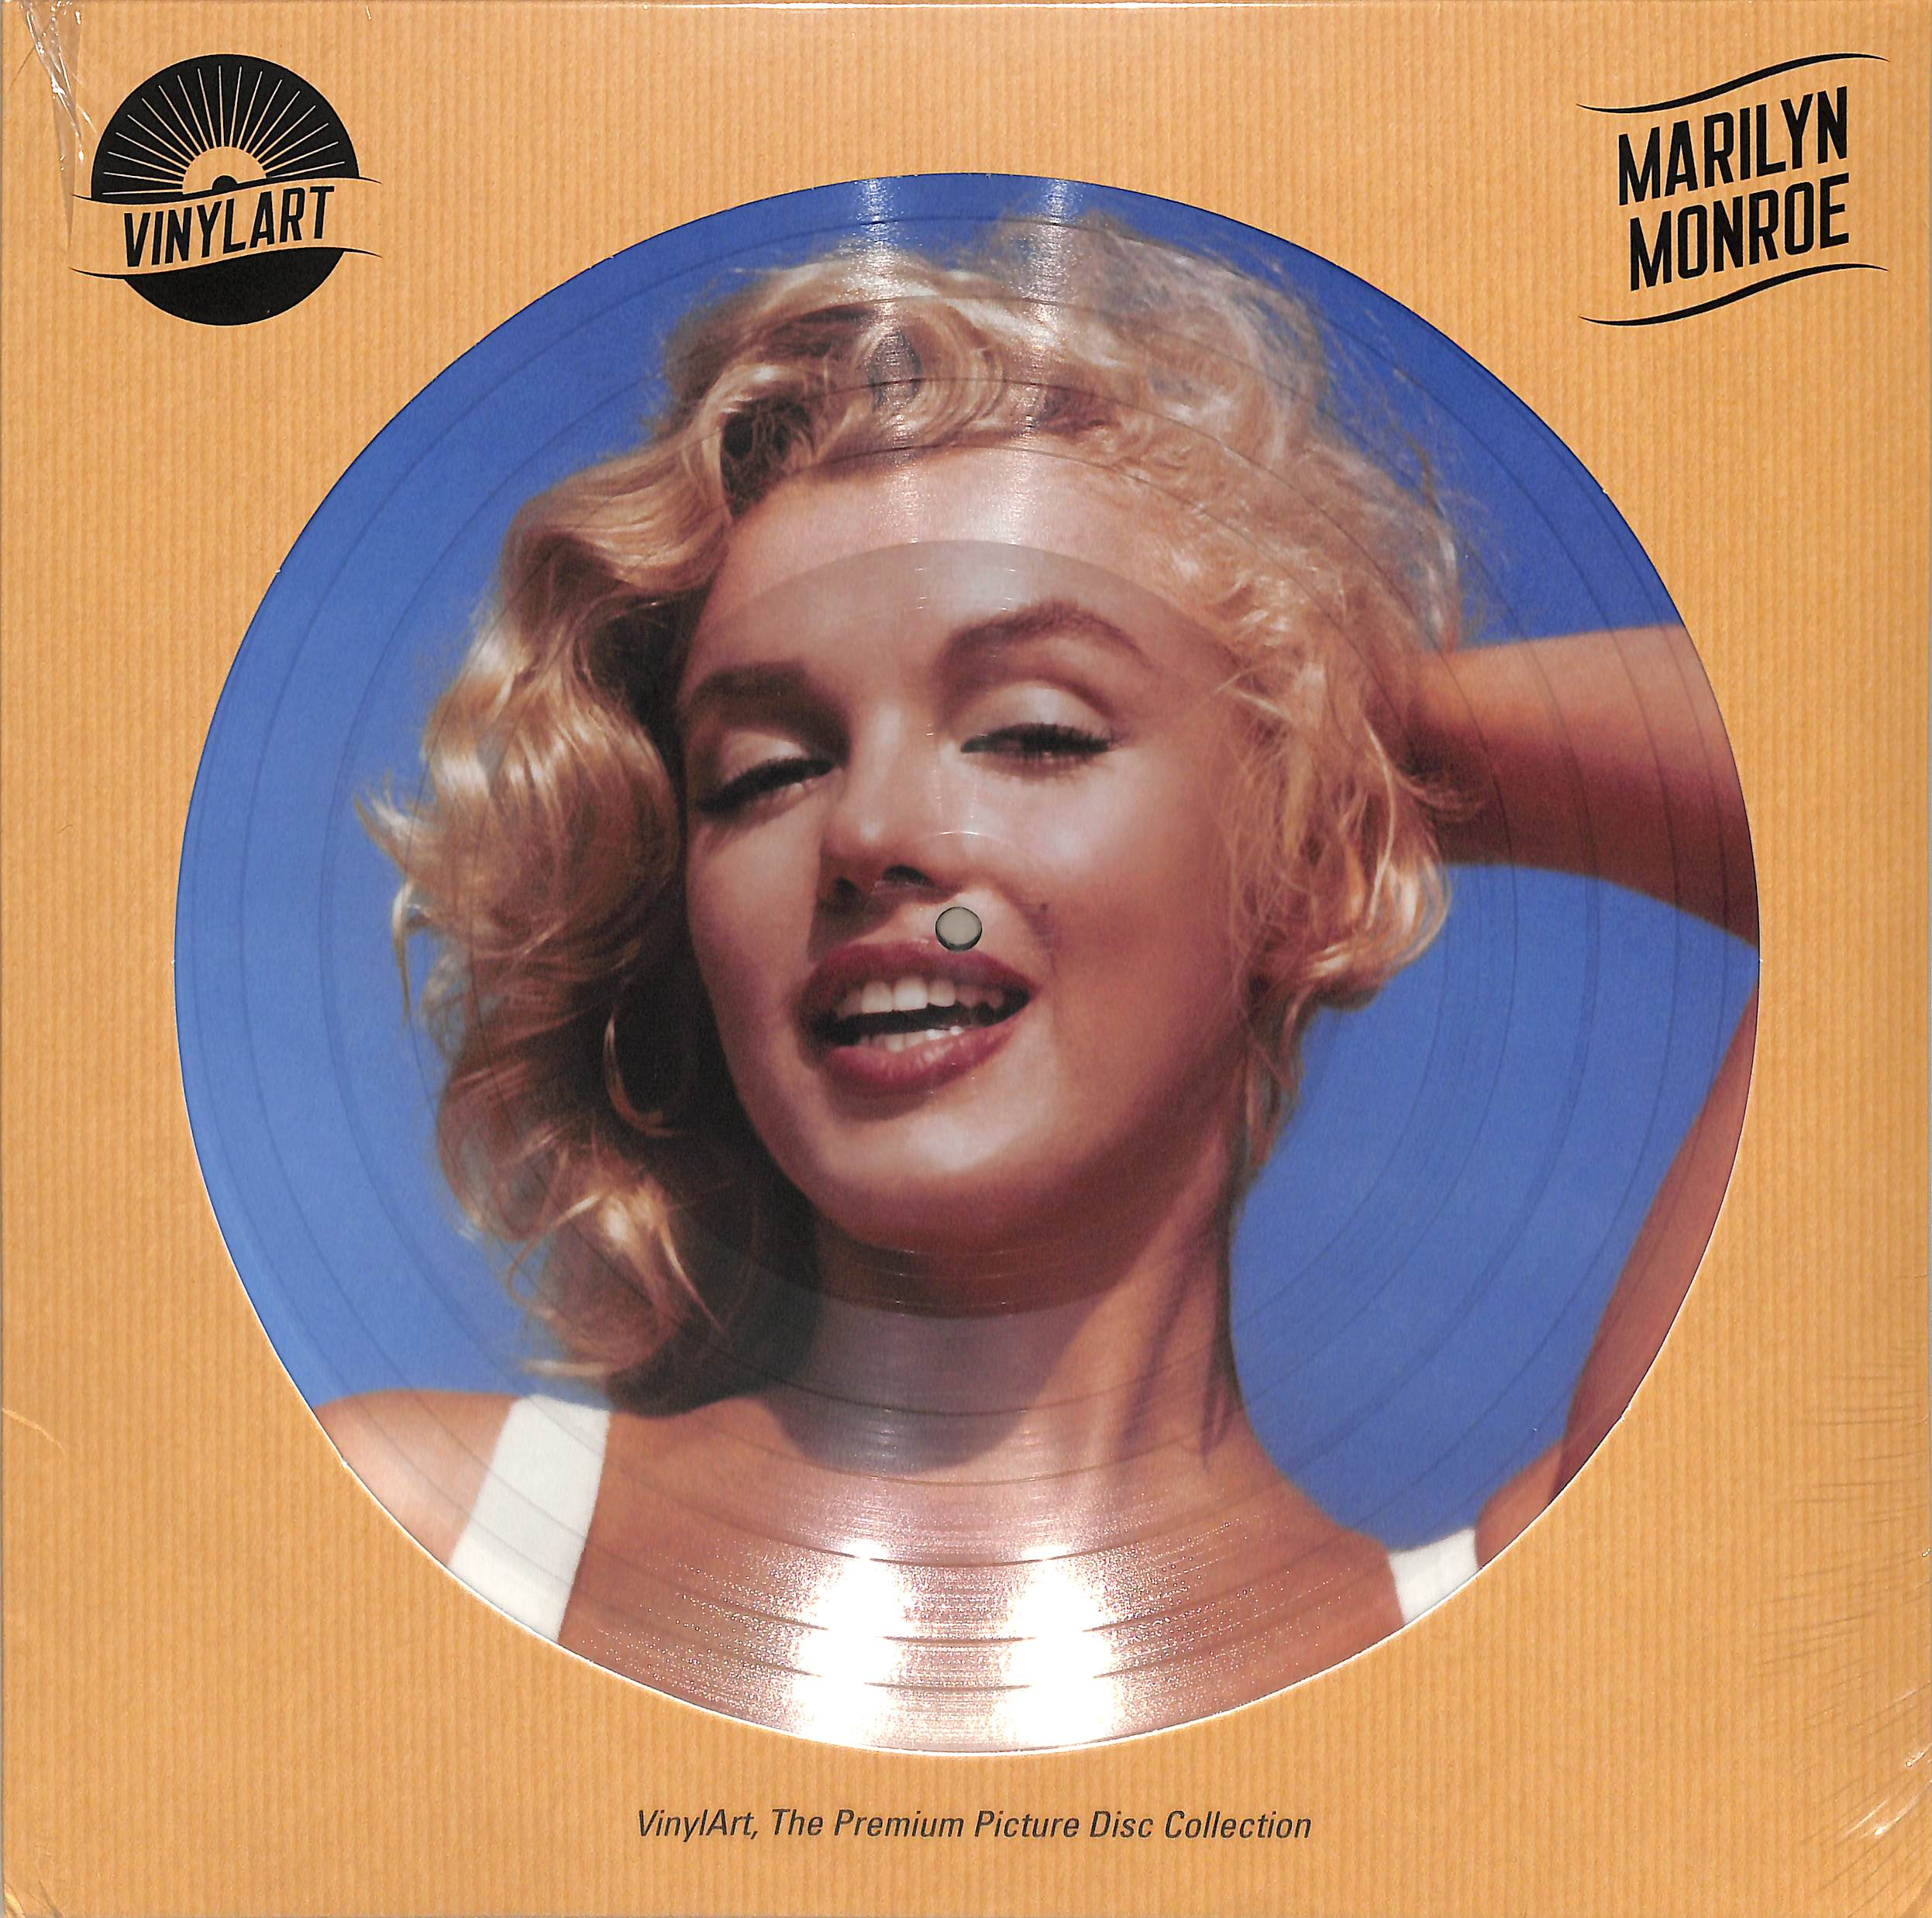 Marilyn Monroe - VINYLART - THE PREMIUM PICTURE DISC COLLECTION